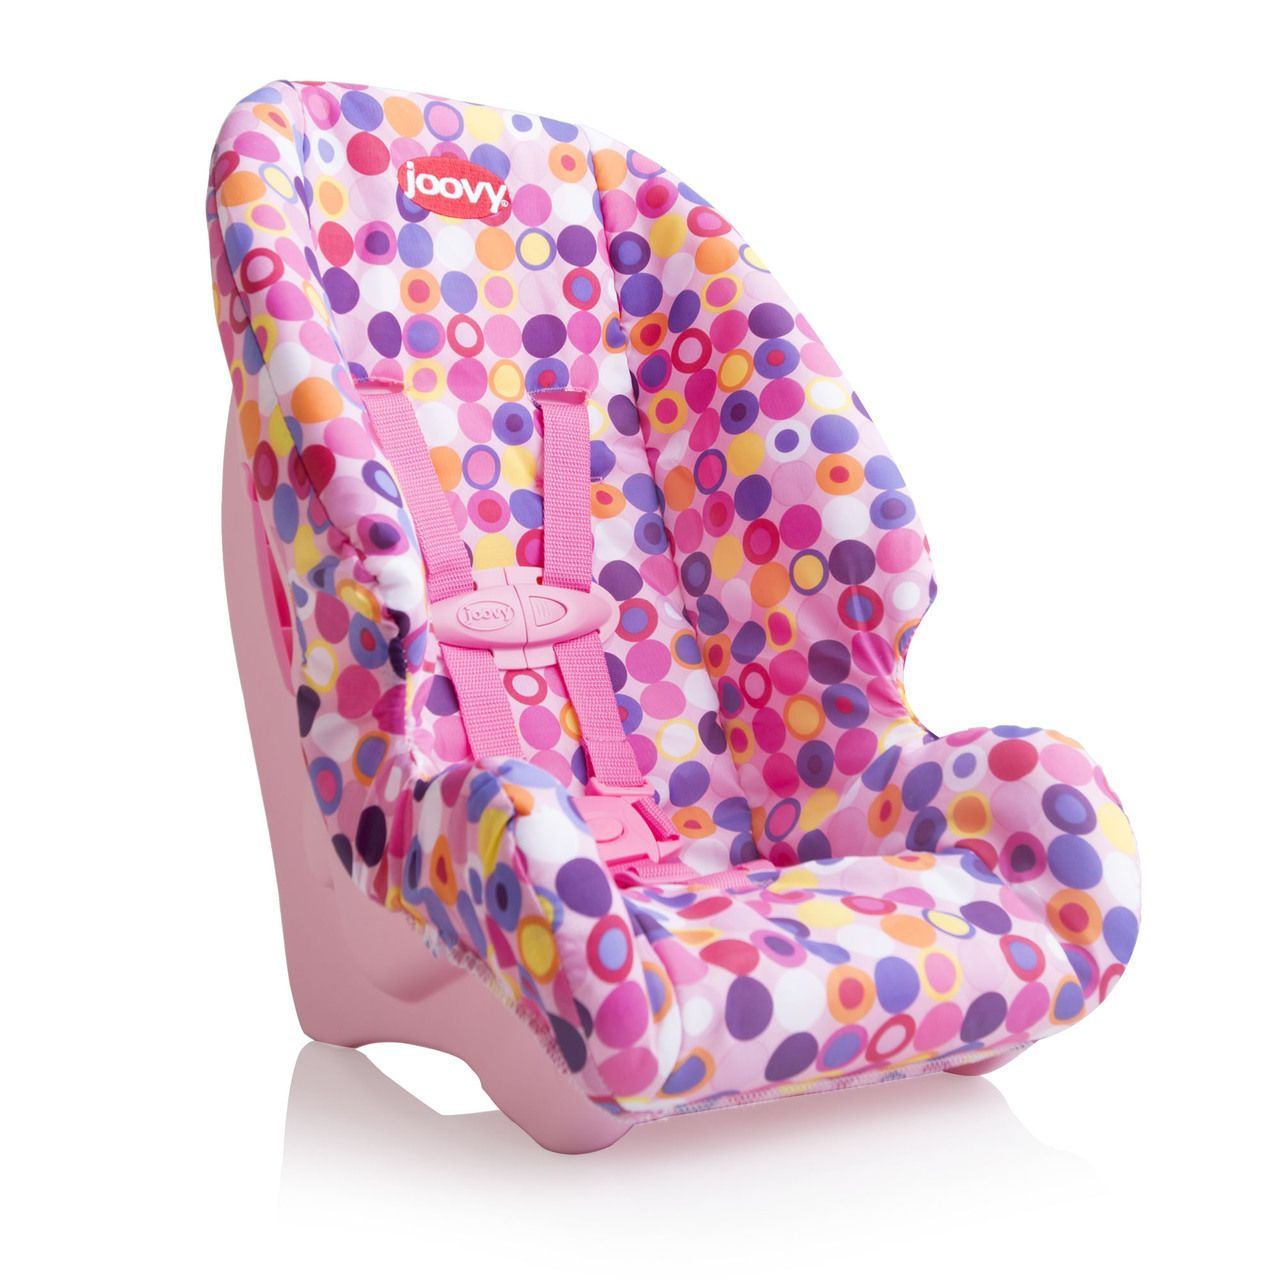 Toy Booster Seat Baby doll car seat, Baby doll toys